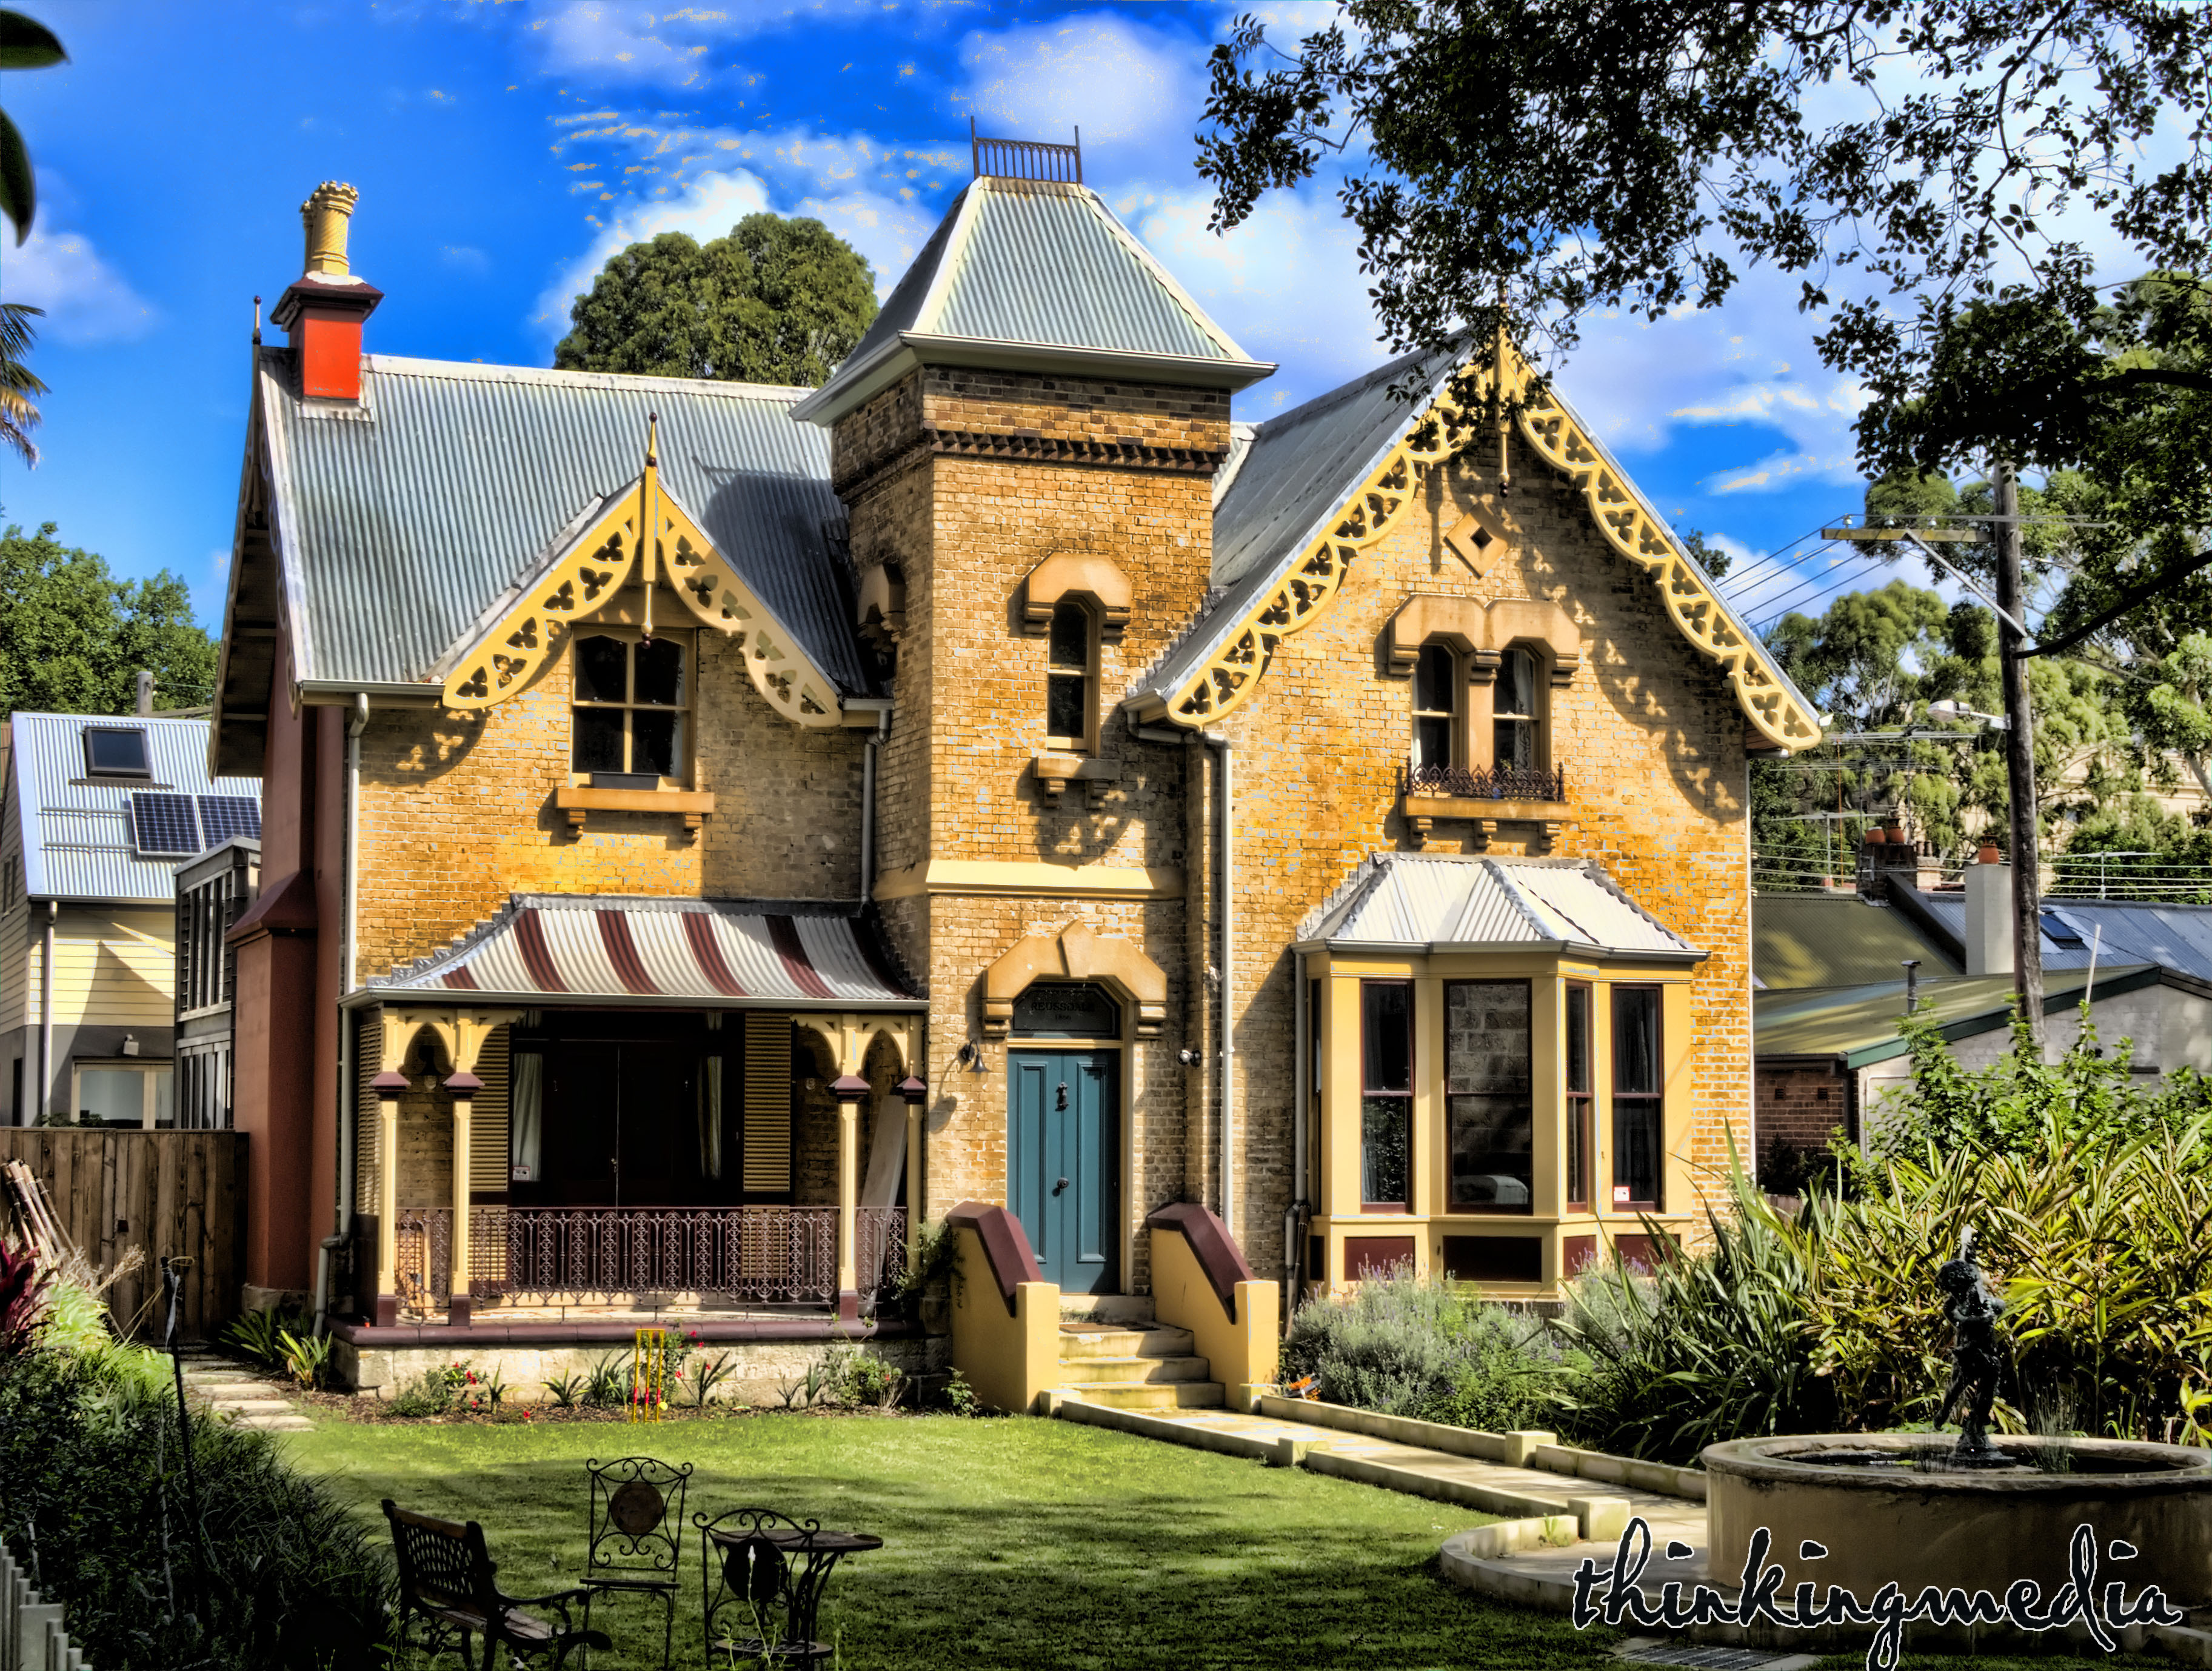 Wiki victorian architecture upcscavenger for Victorian style home builders